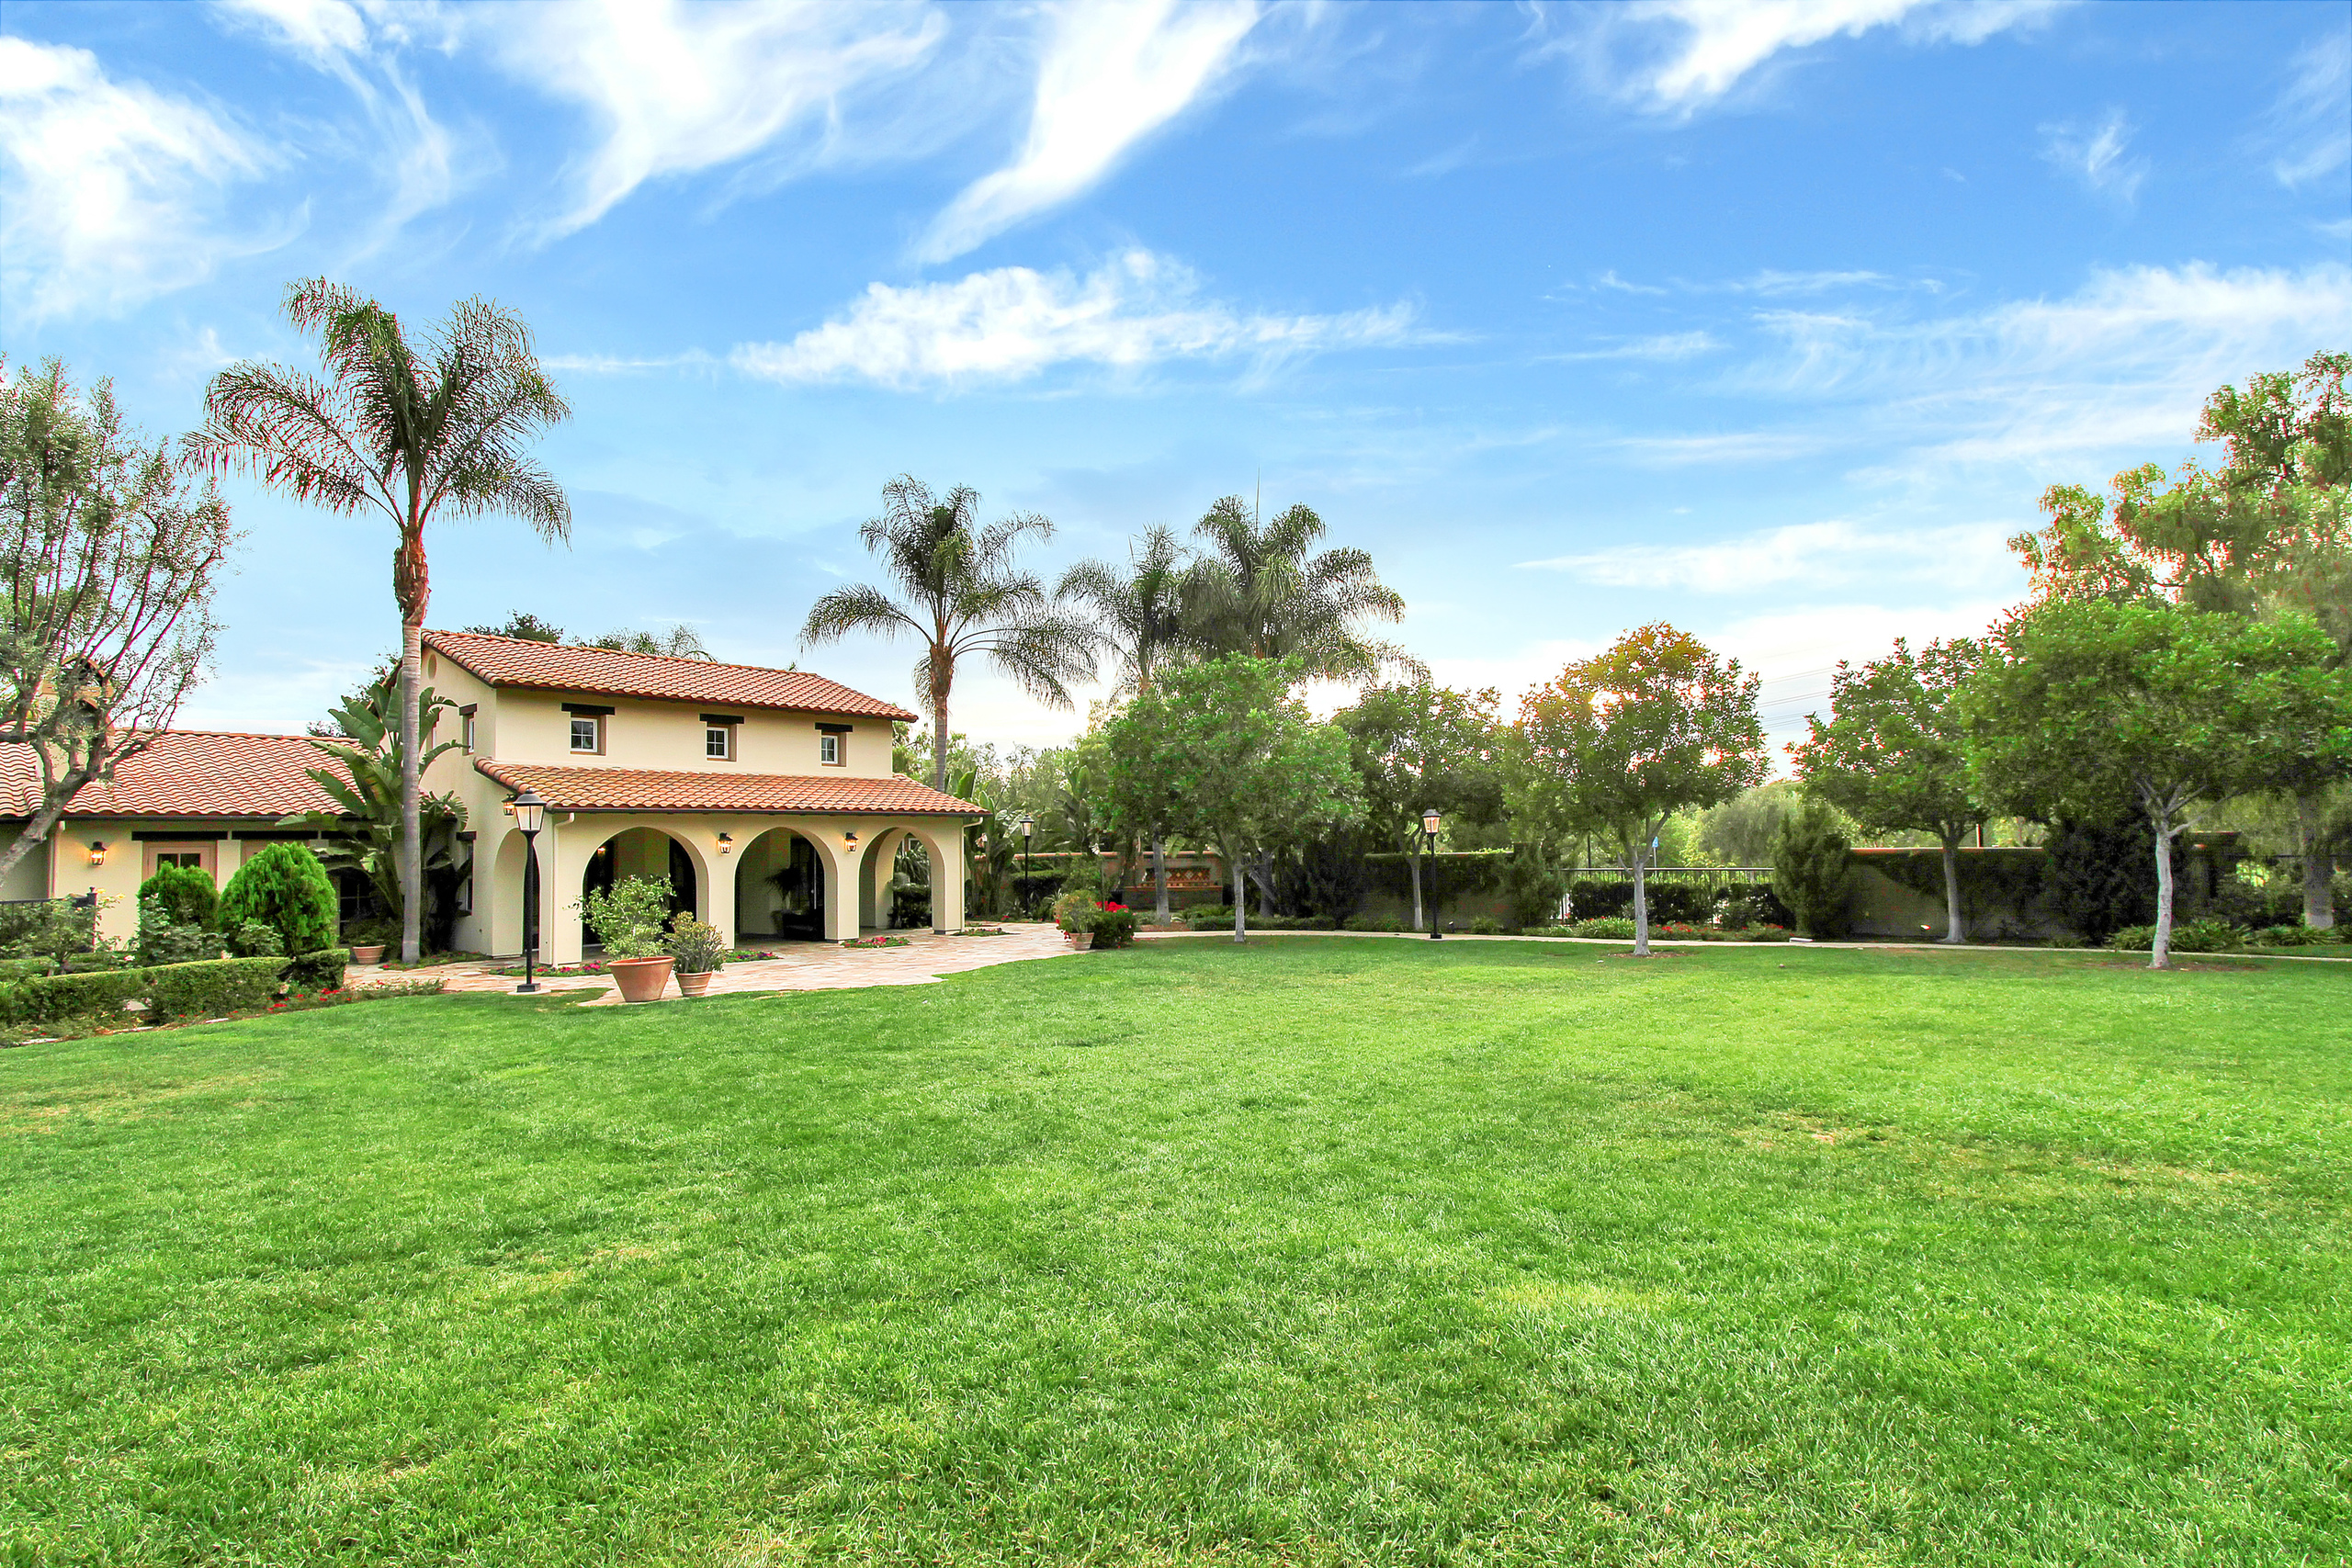 1106724-Ladera_Covenant_Hills_Clubhouse